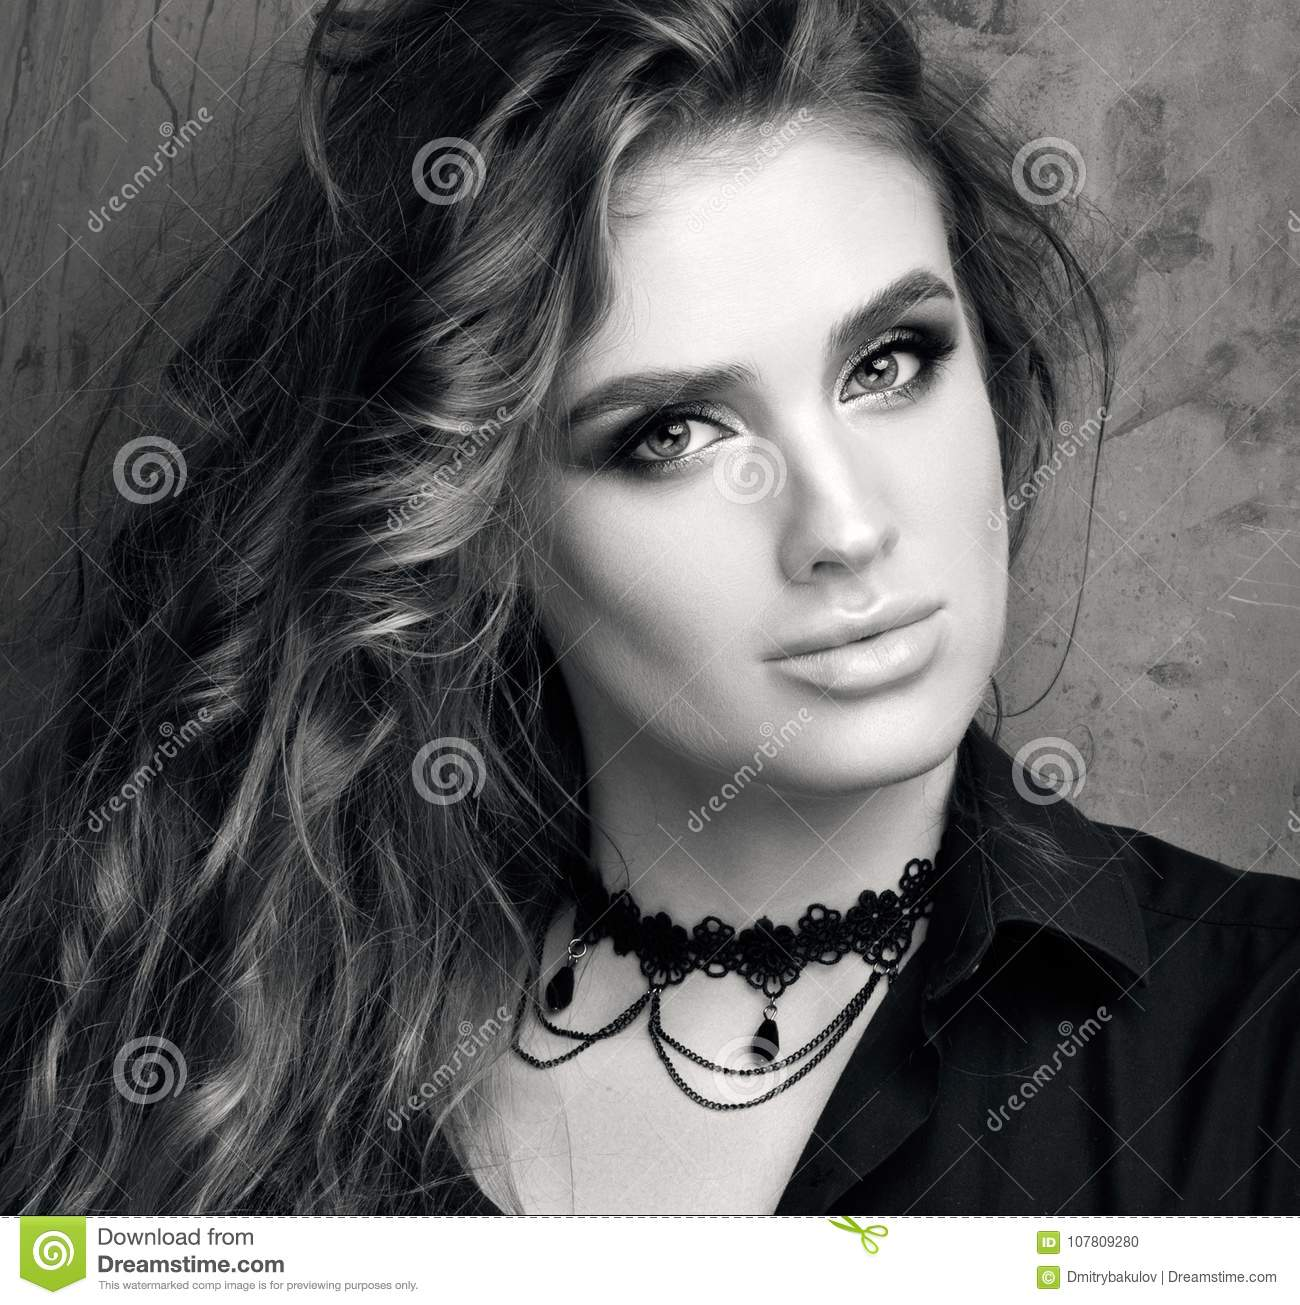 Black and white portrait of closeup up of a young woman in black shirt posing in front of a metal wall luxurious healthy hair and professional makeup